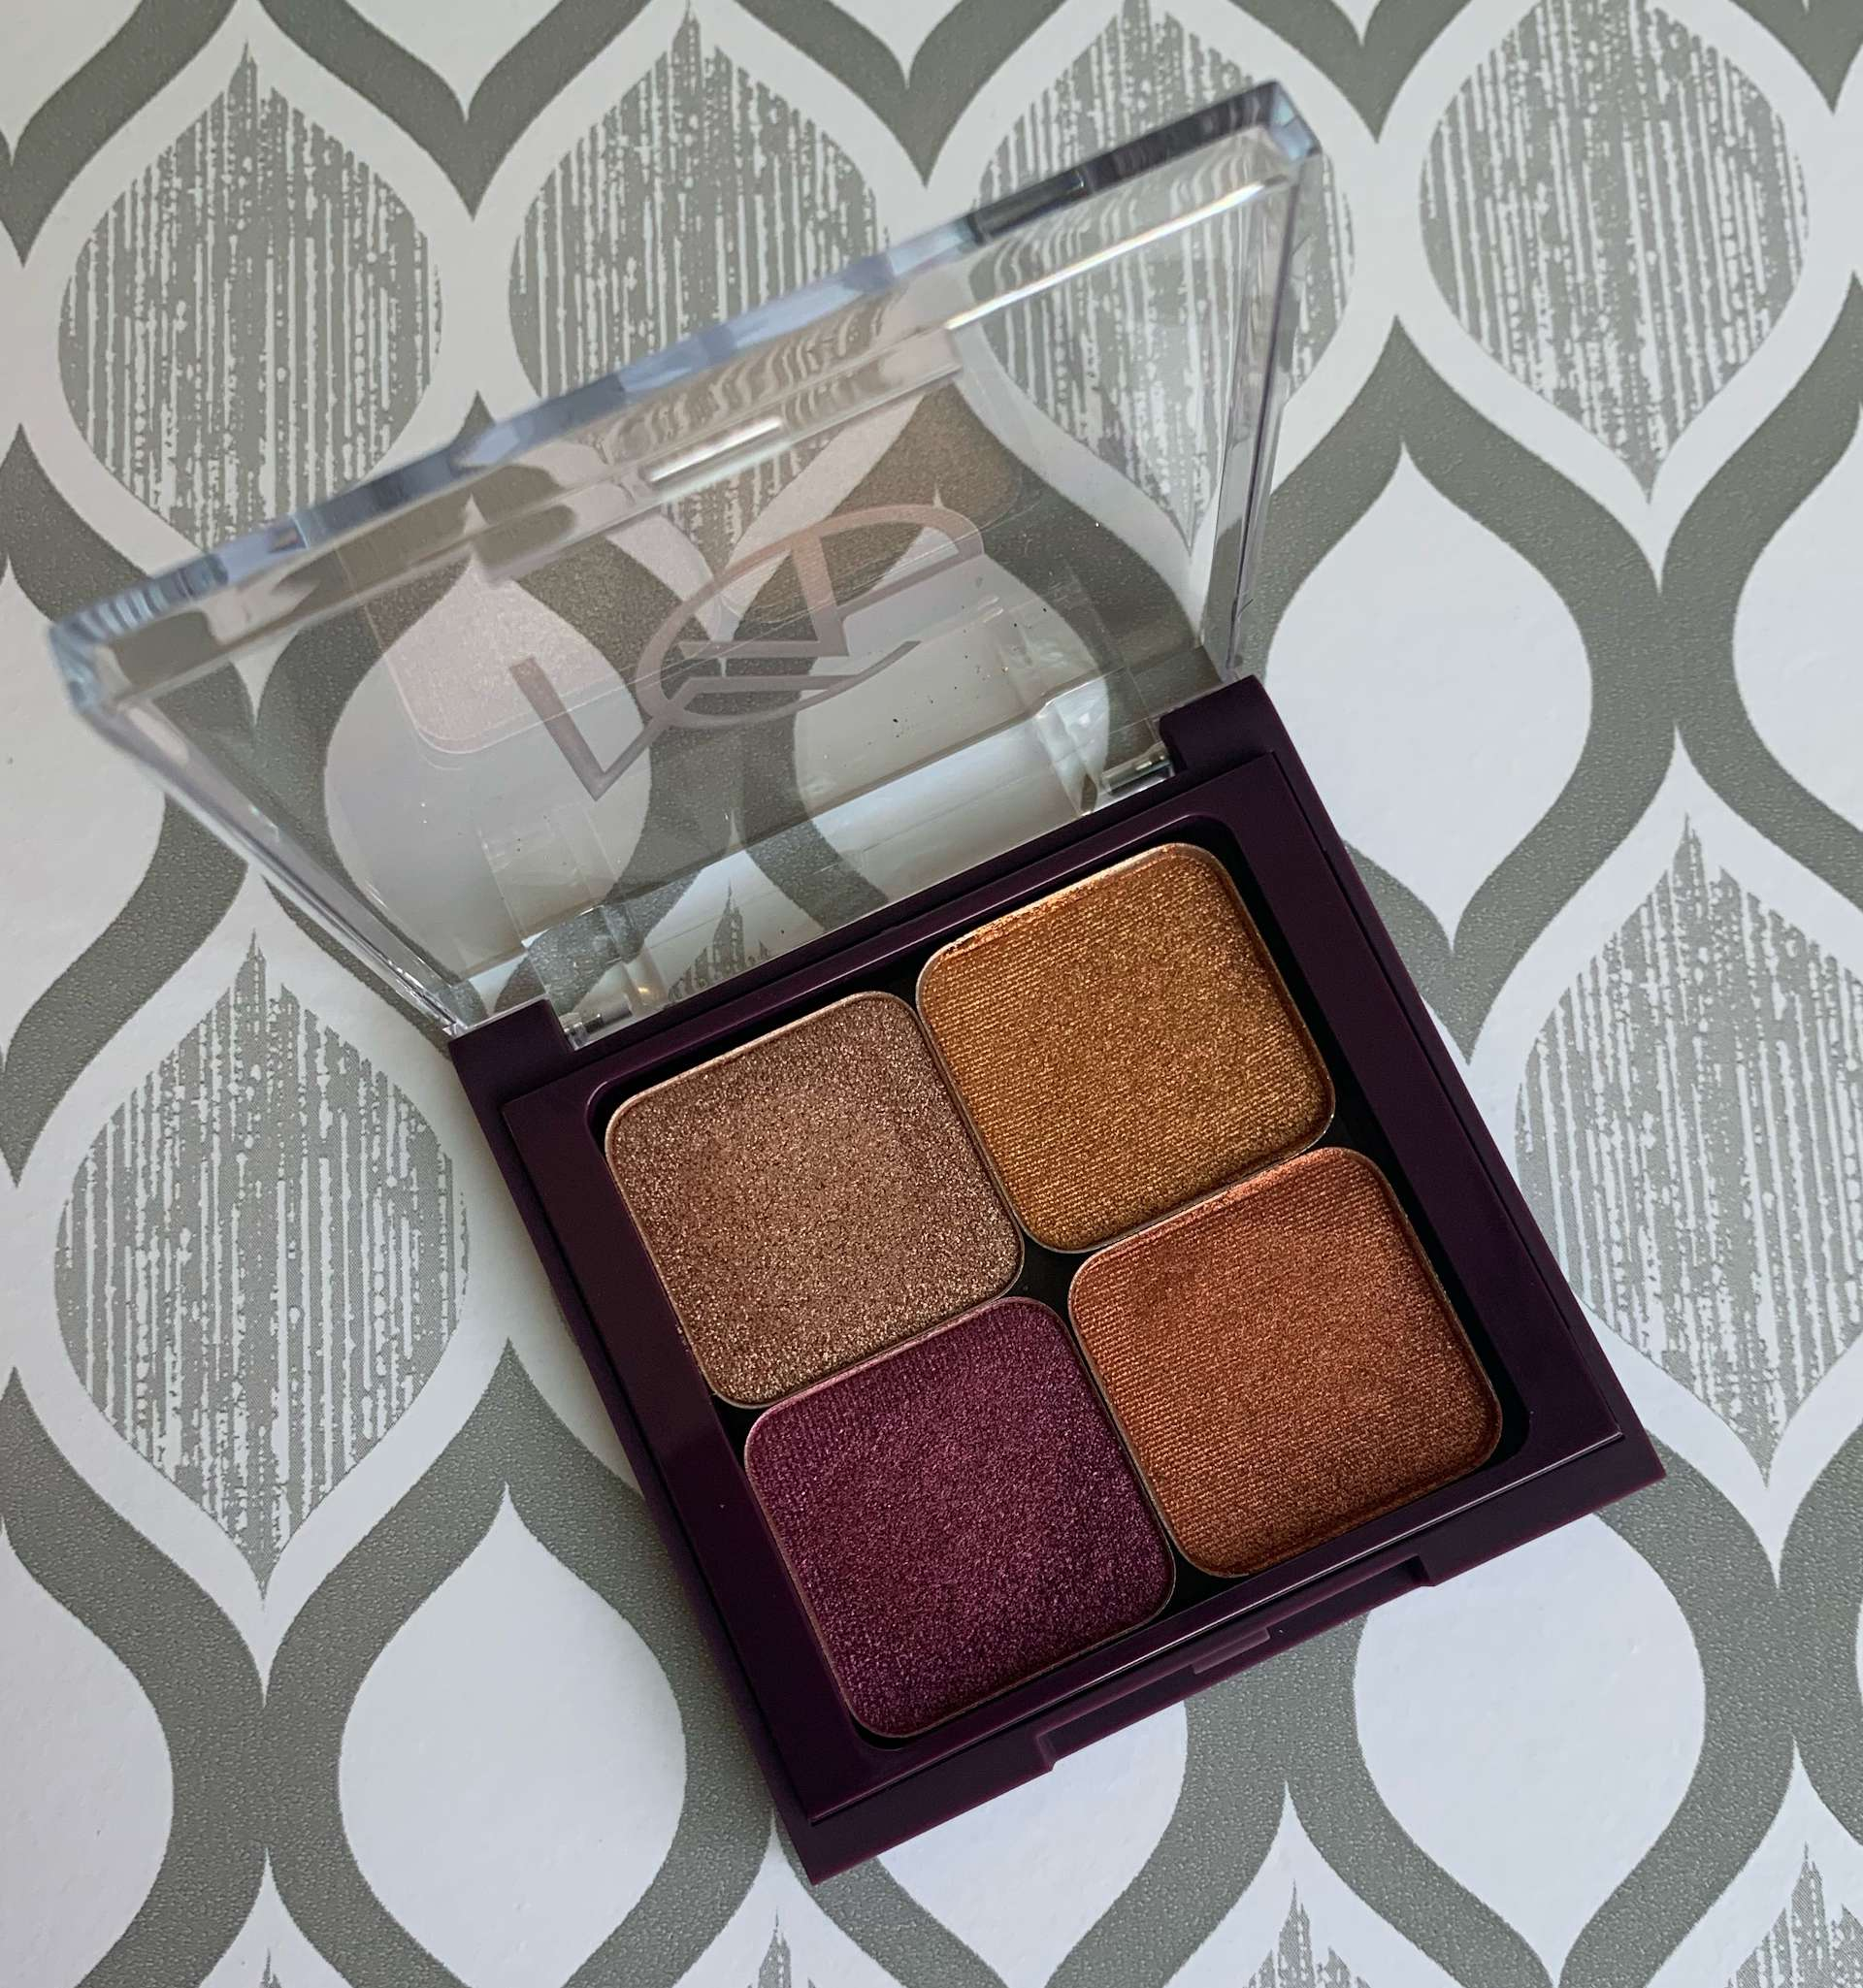 Makeup Geek Foiled Eyeshadow Swatches Grandstand, Legend, Mystical, Flame Thrower on dark skin